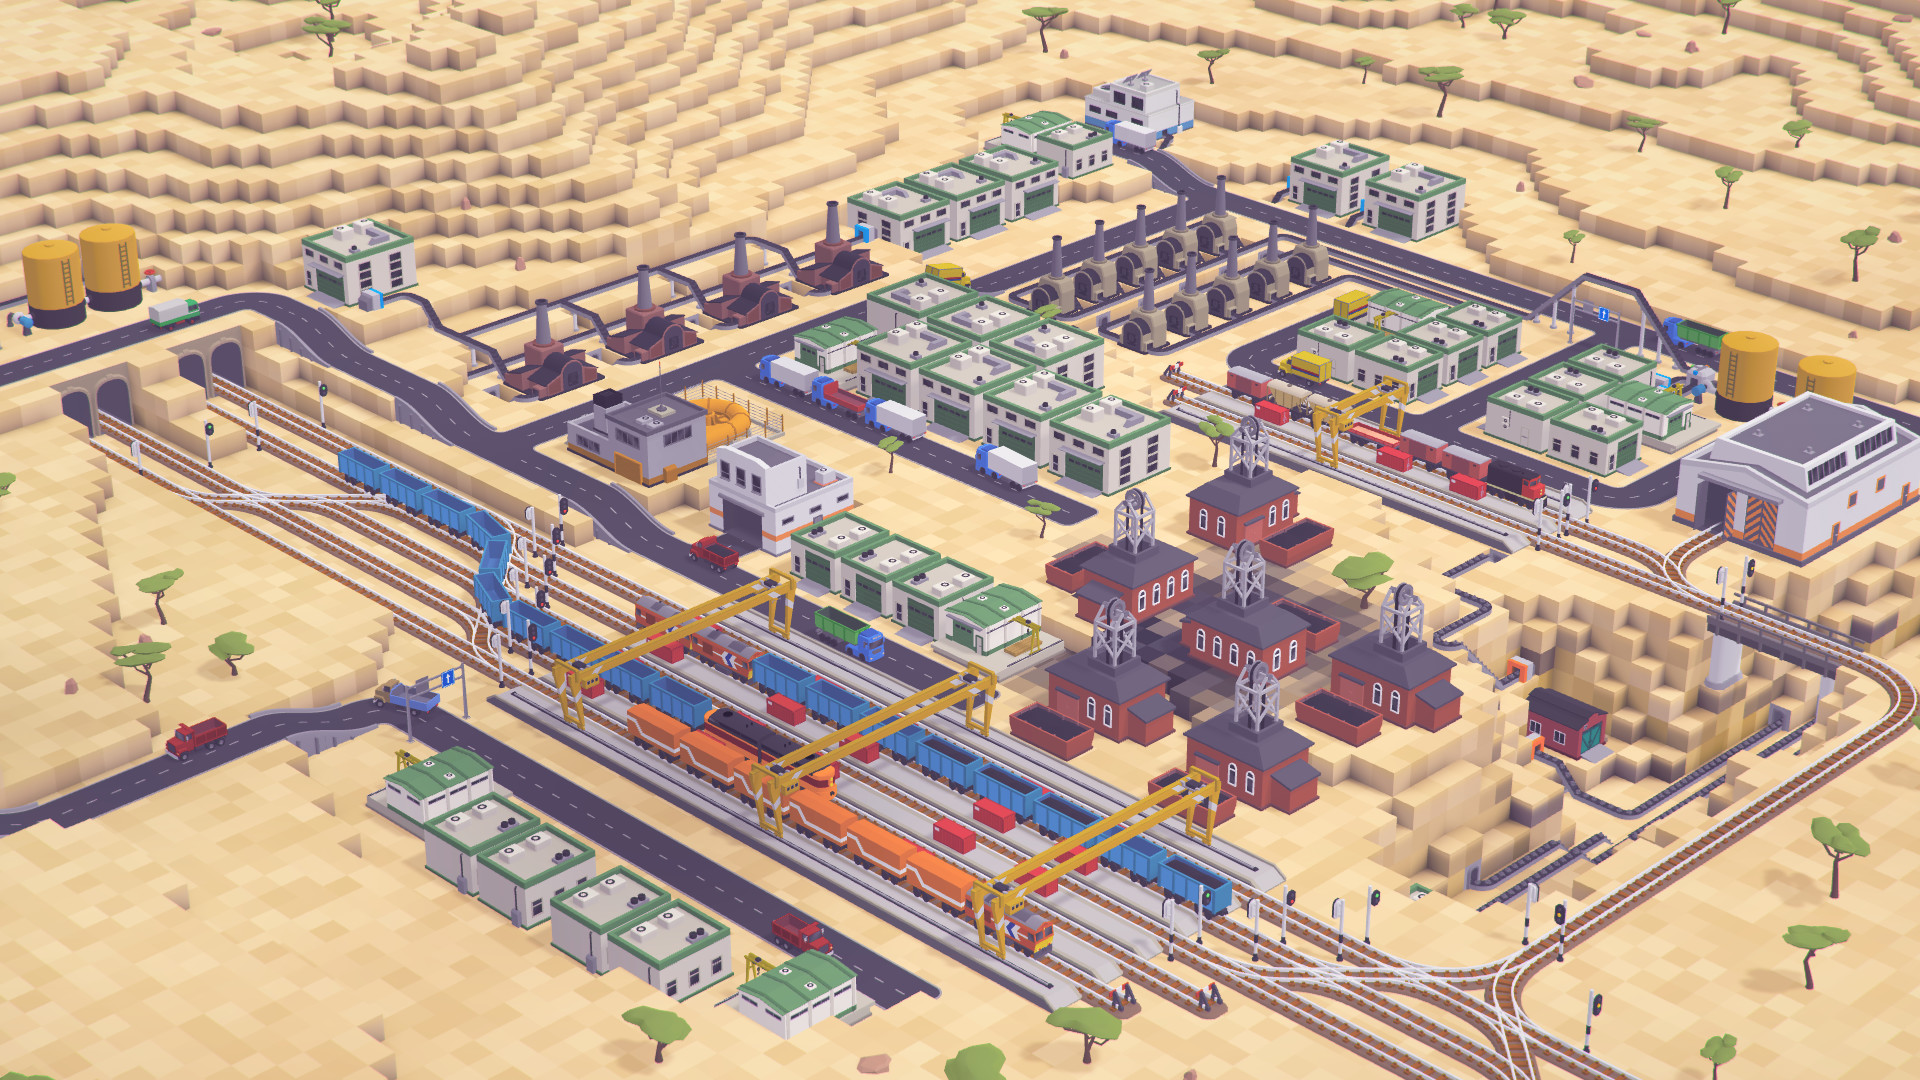 Find the best laptop for Voxel Tycoon